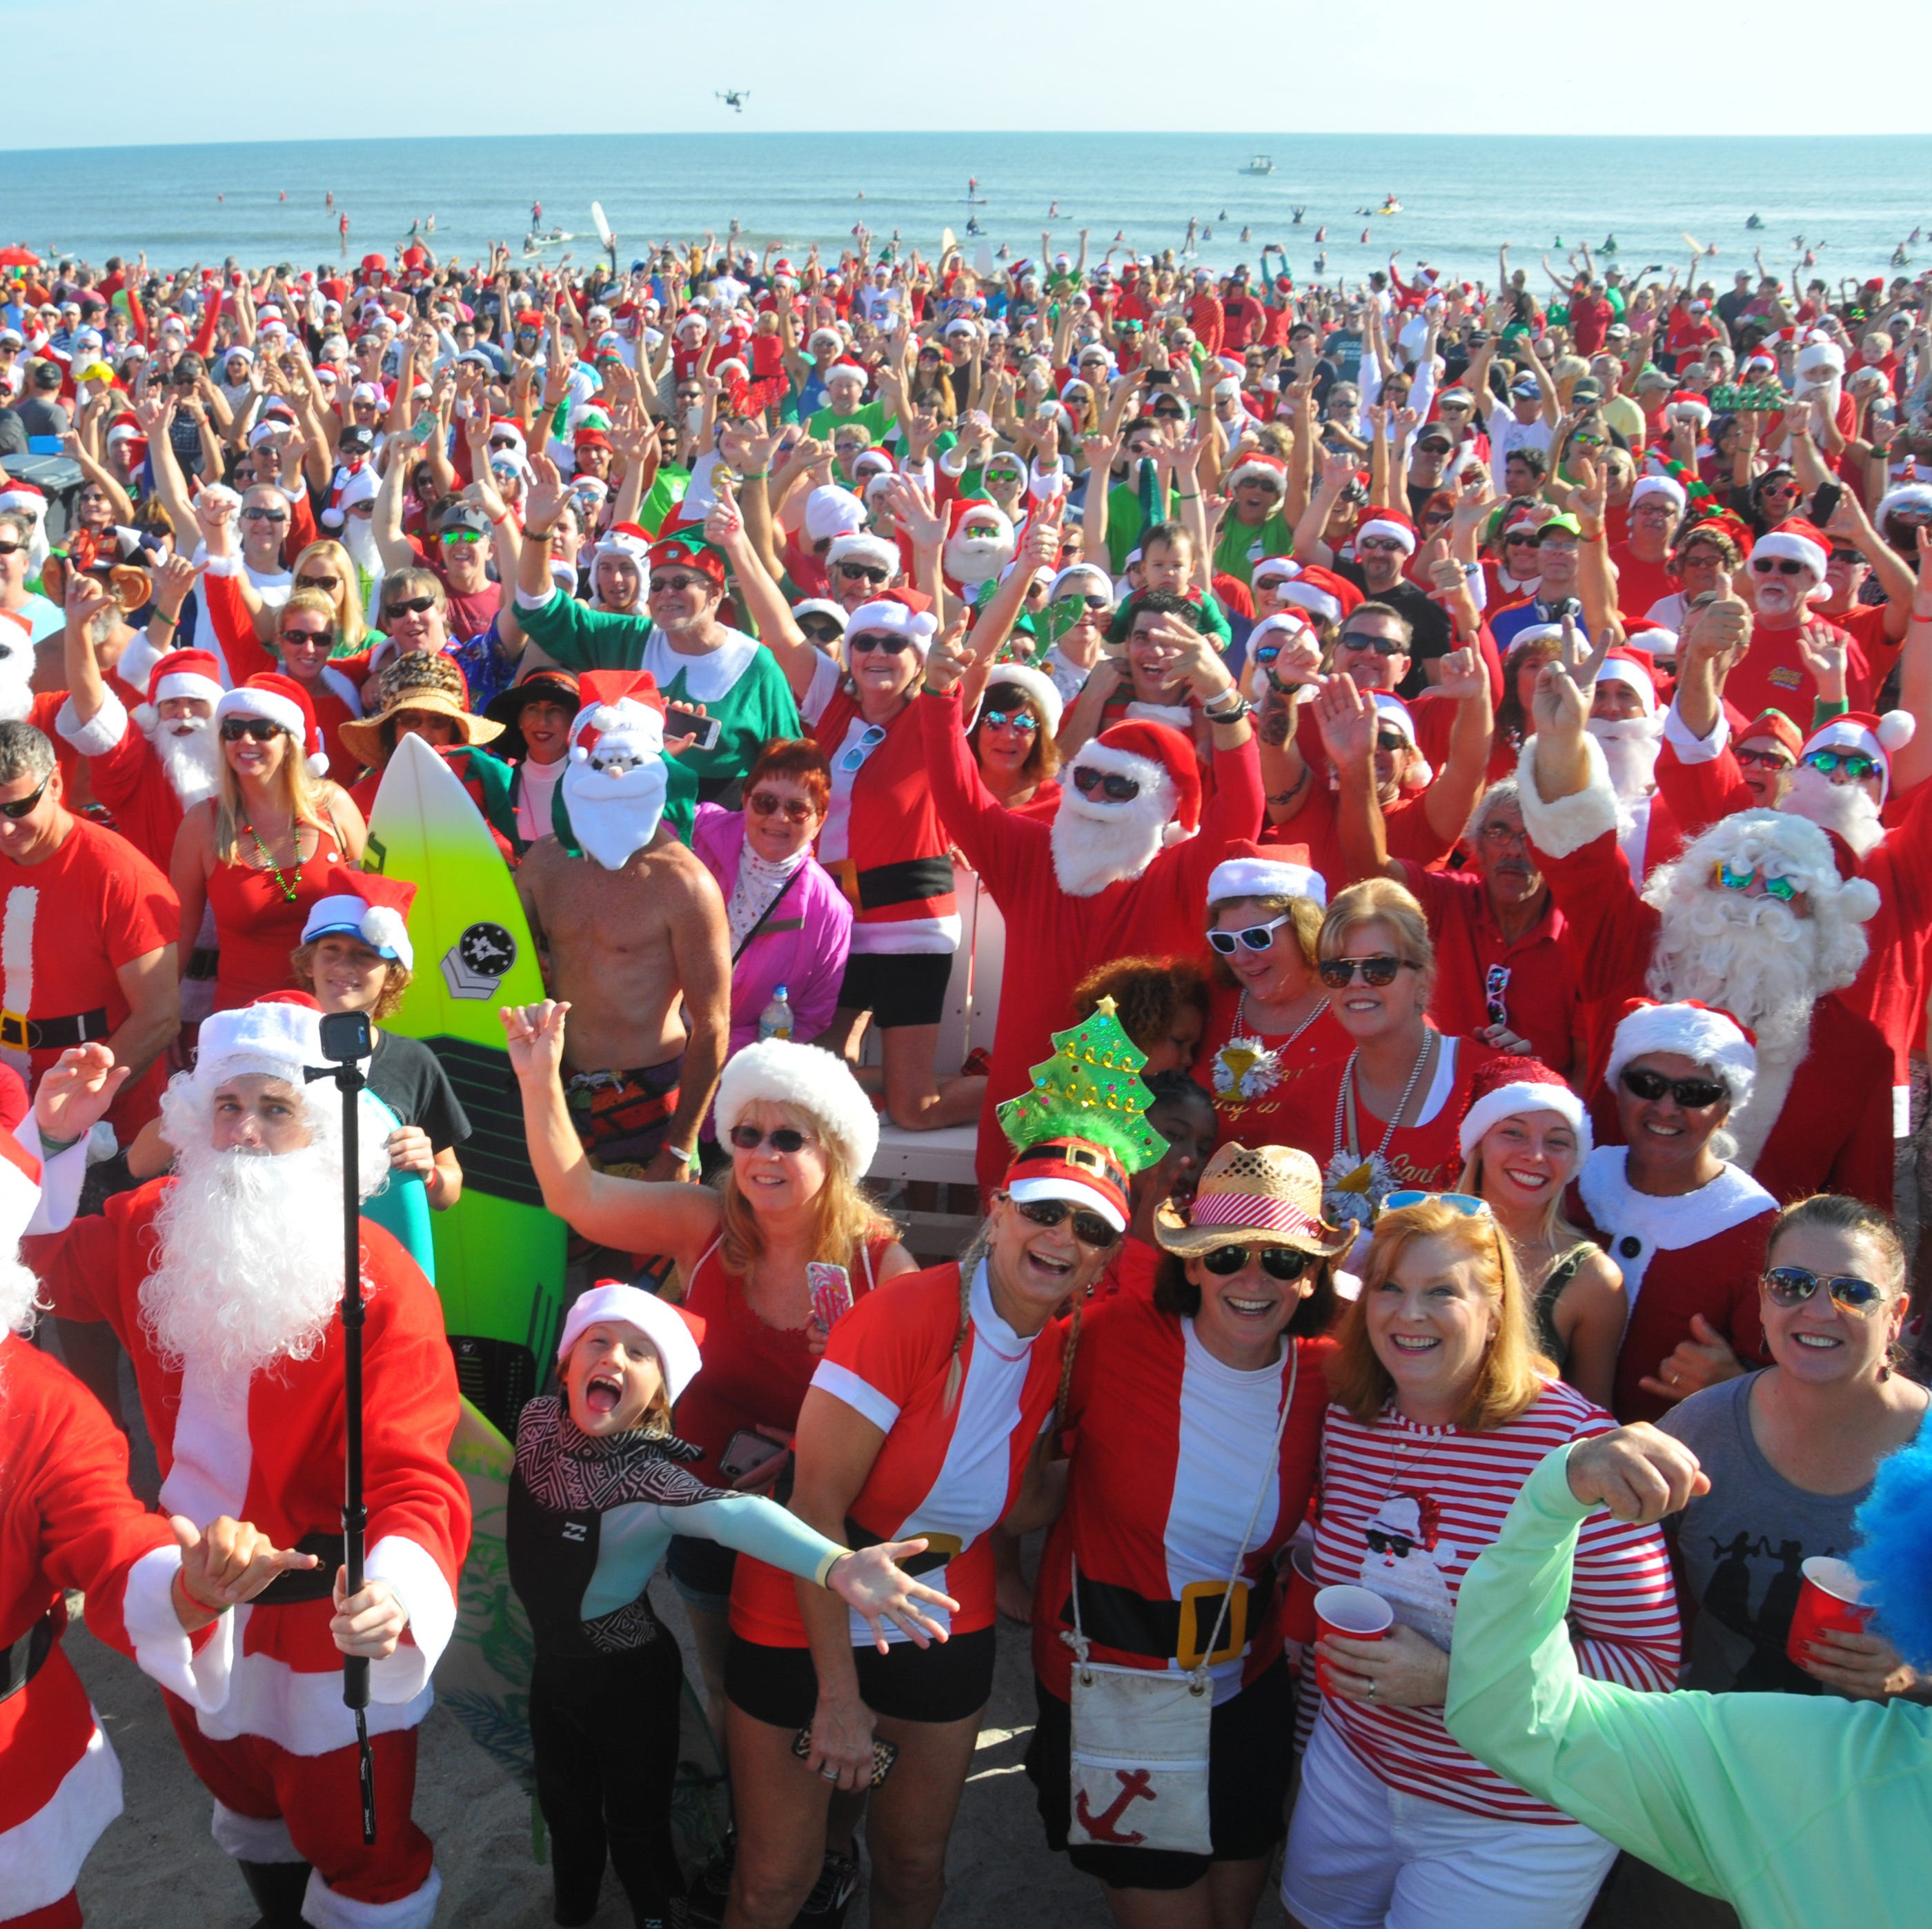 Surfing Santas in Cocoa Beach makes Hallmark Channel for Christmas special